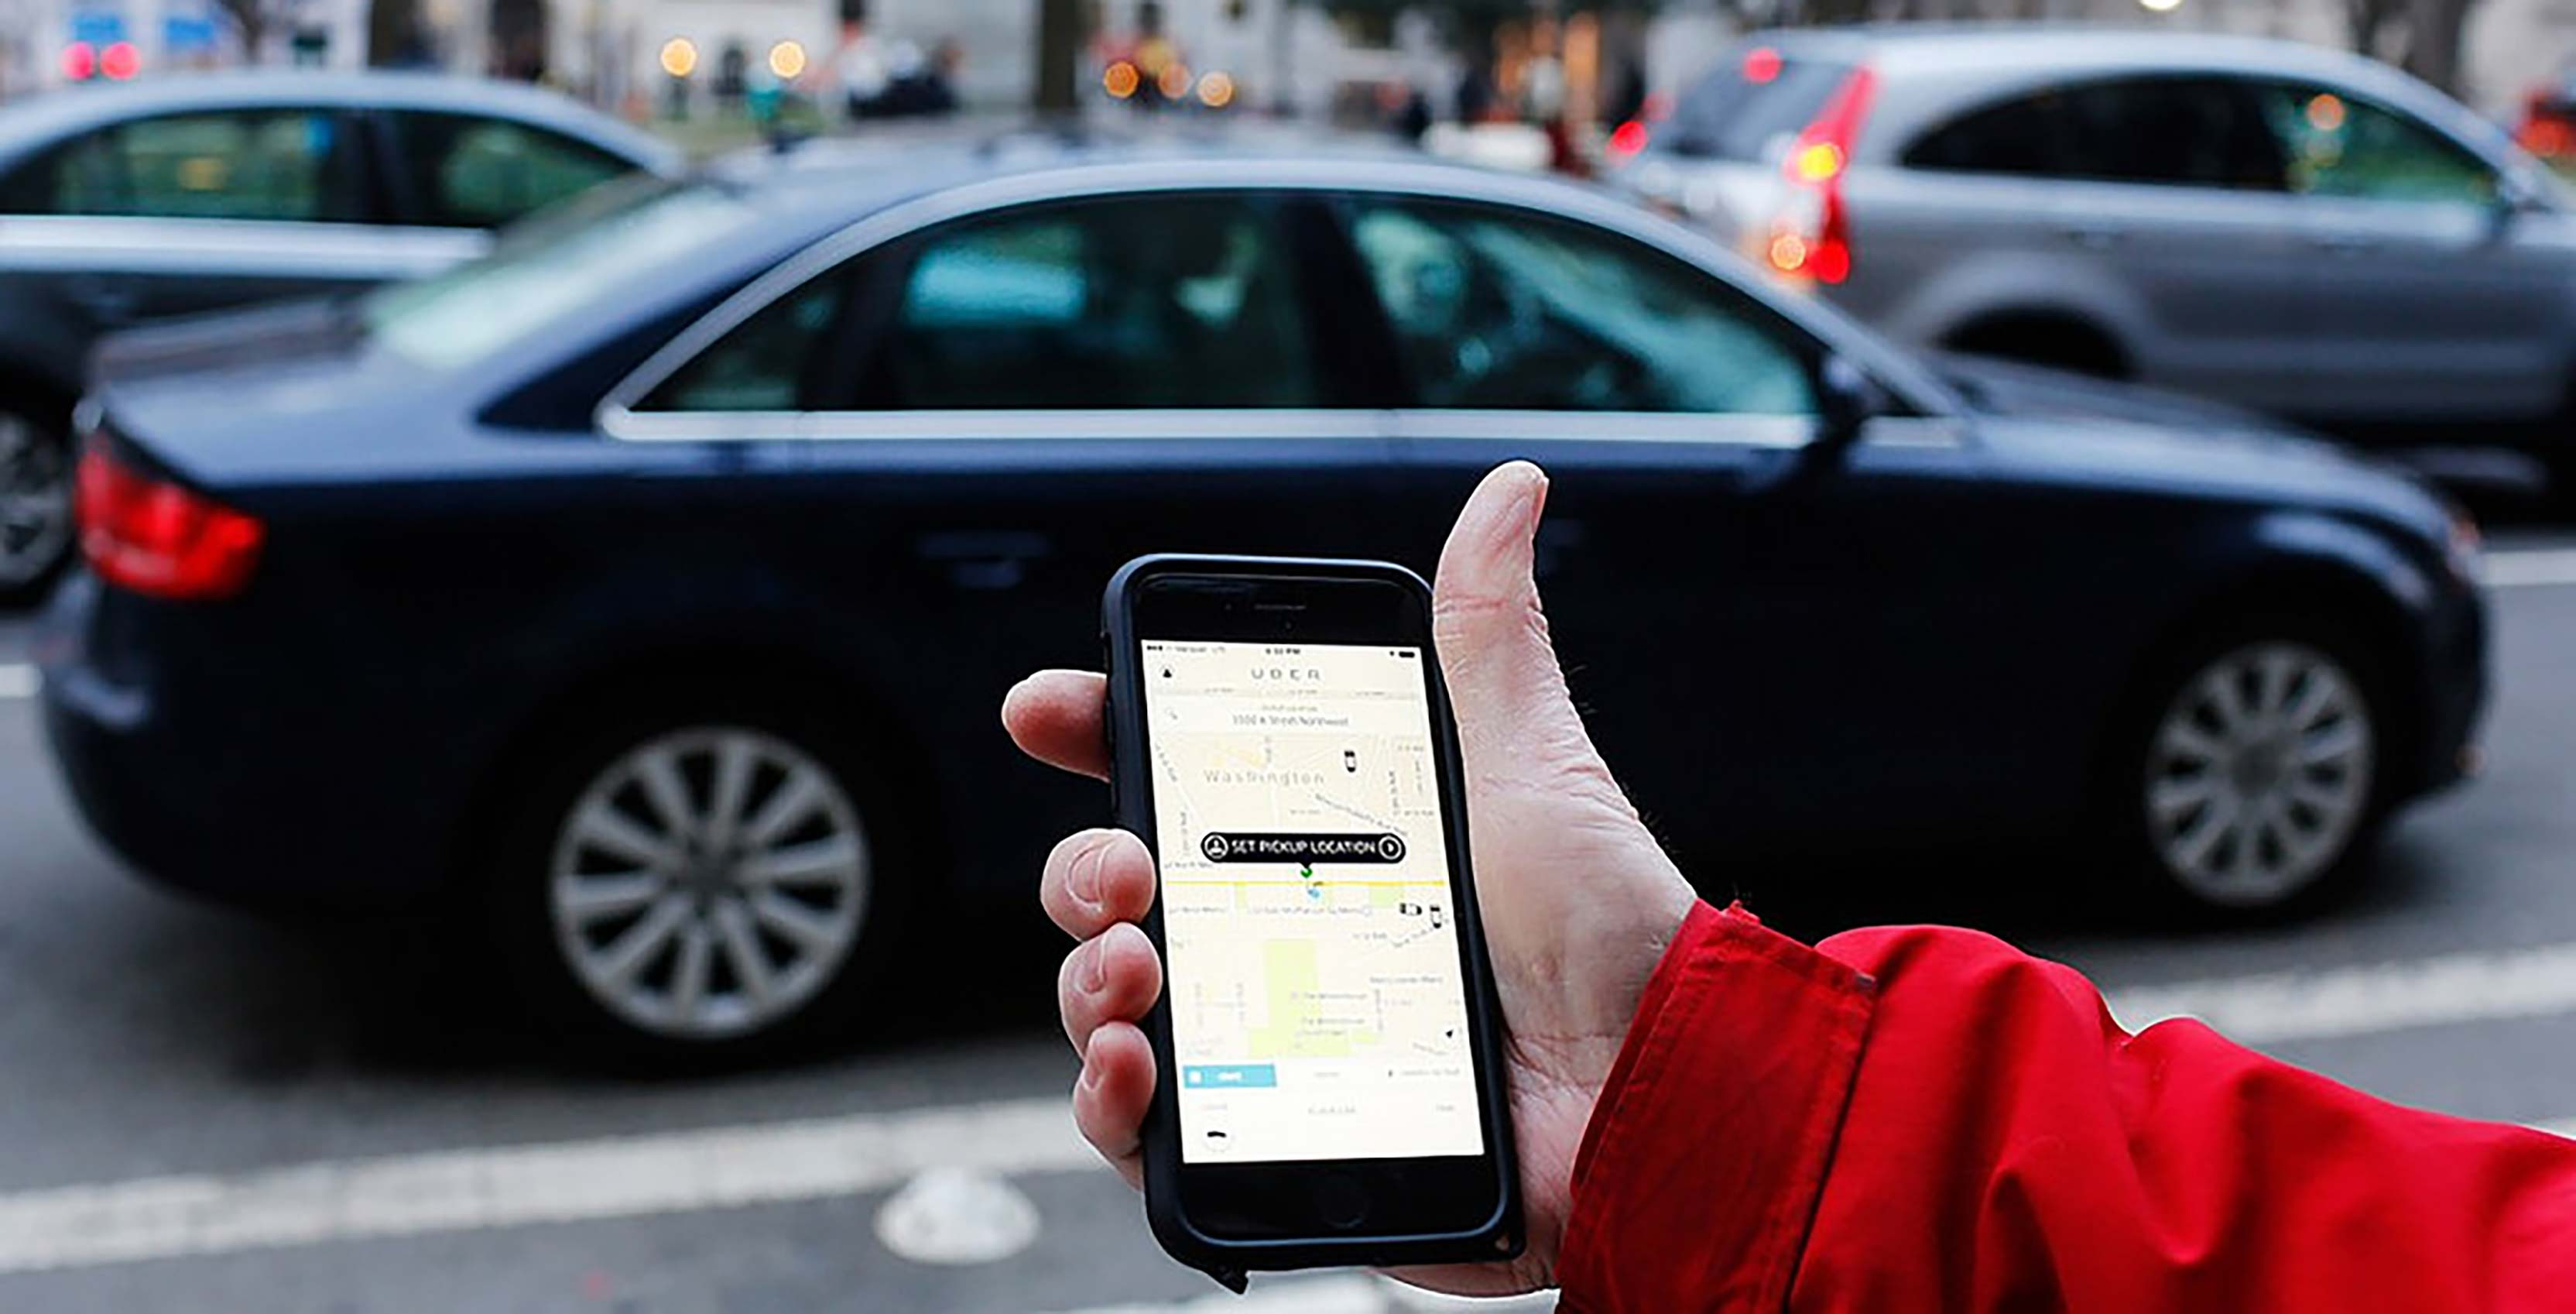 Ride-hailing legislation introduced by B.C. government